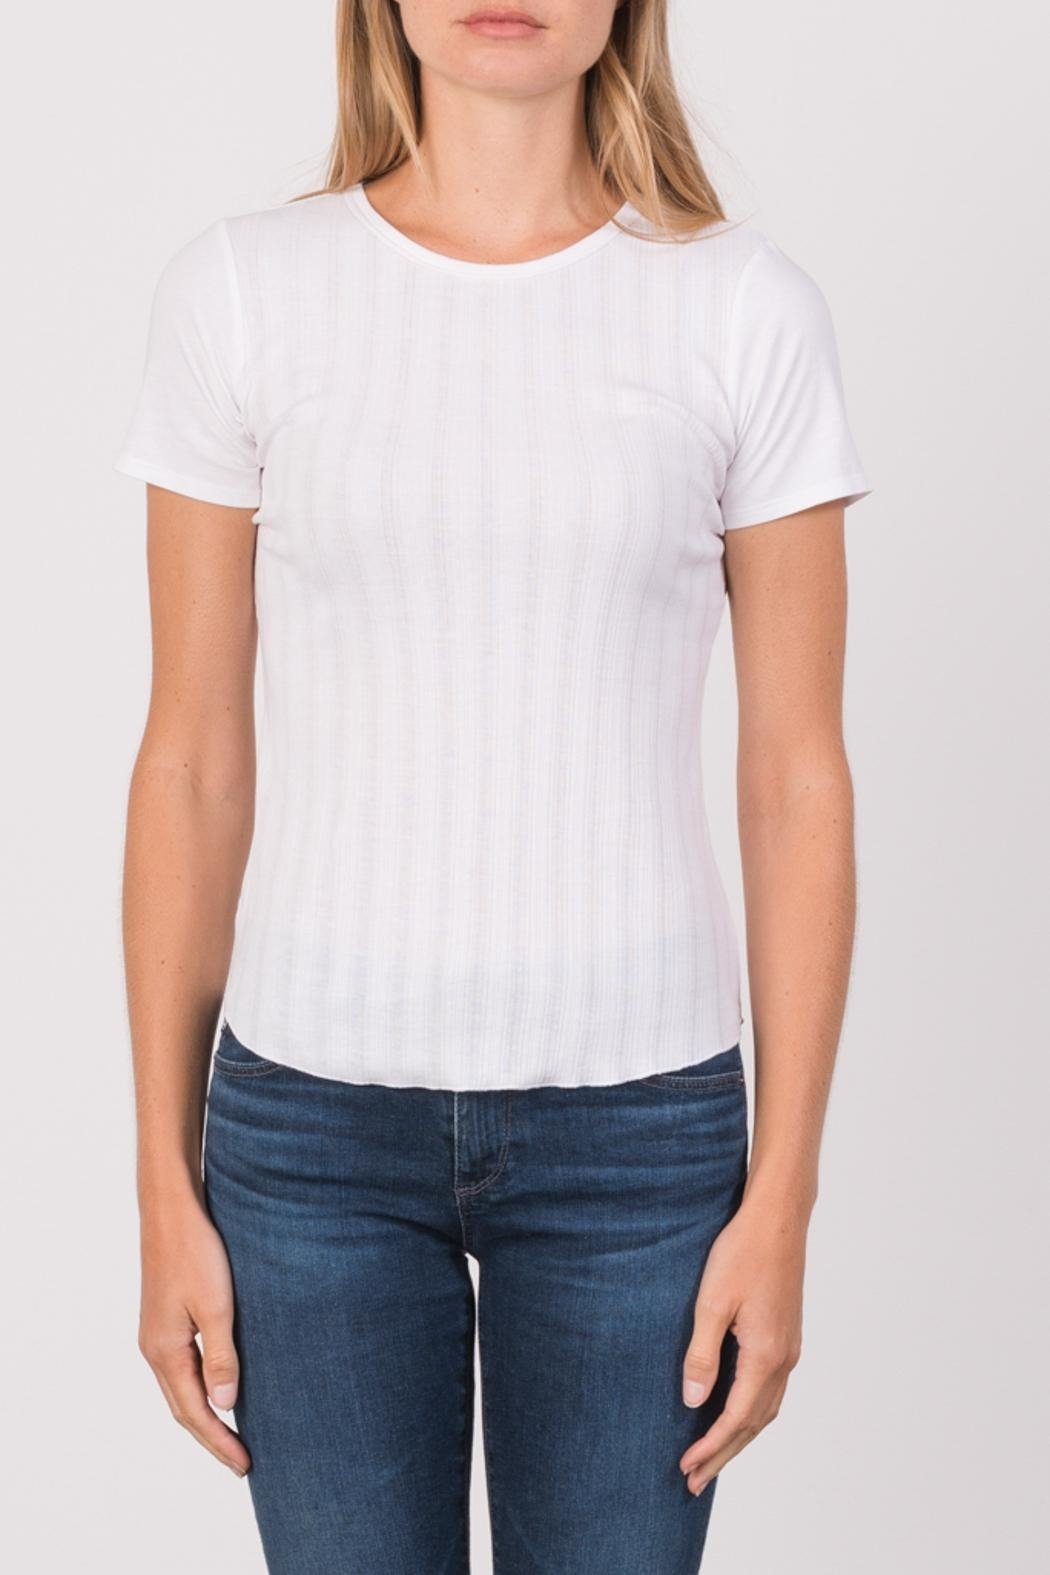 Margaret O'Leary Heirloom Short Sleeve Crew - Front Cropped Image